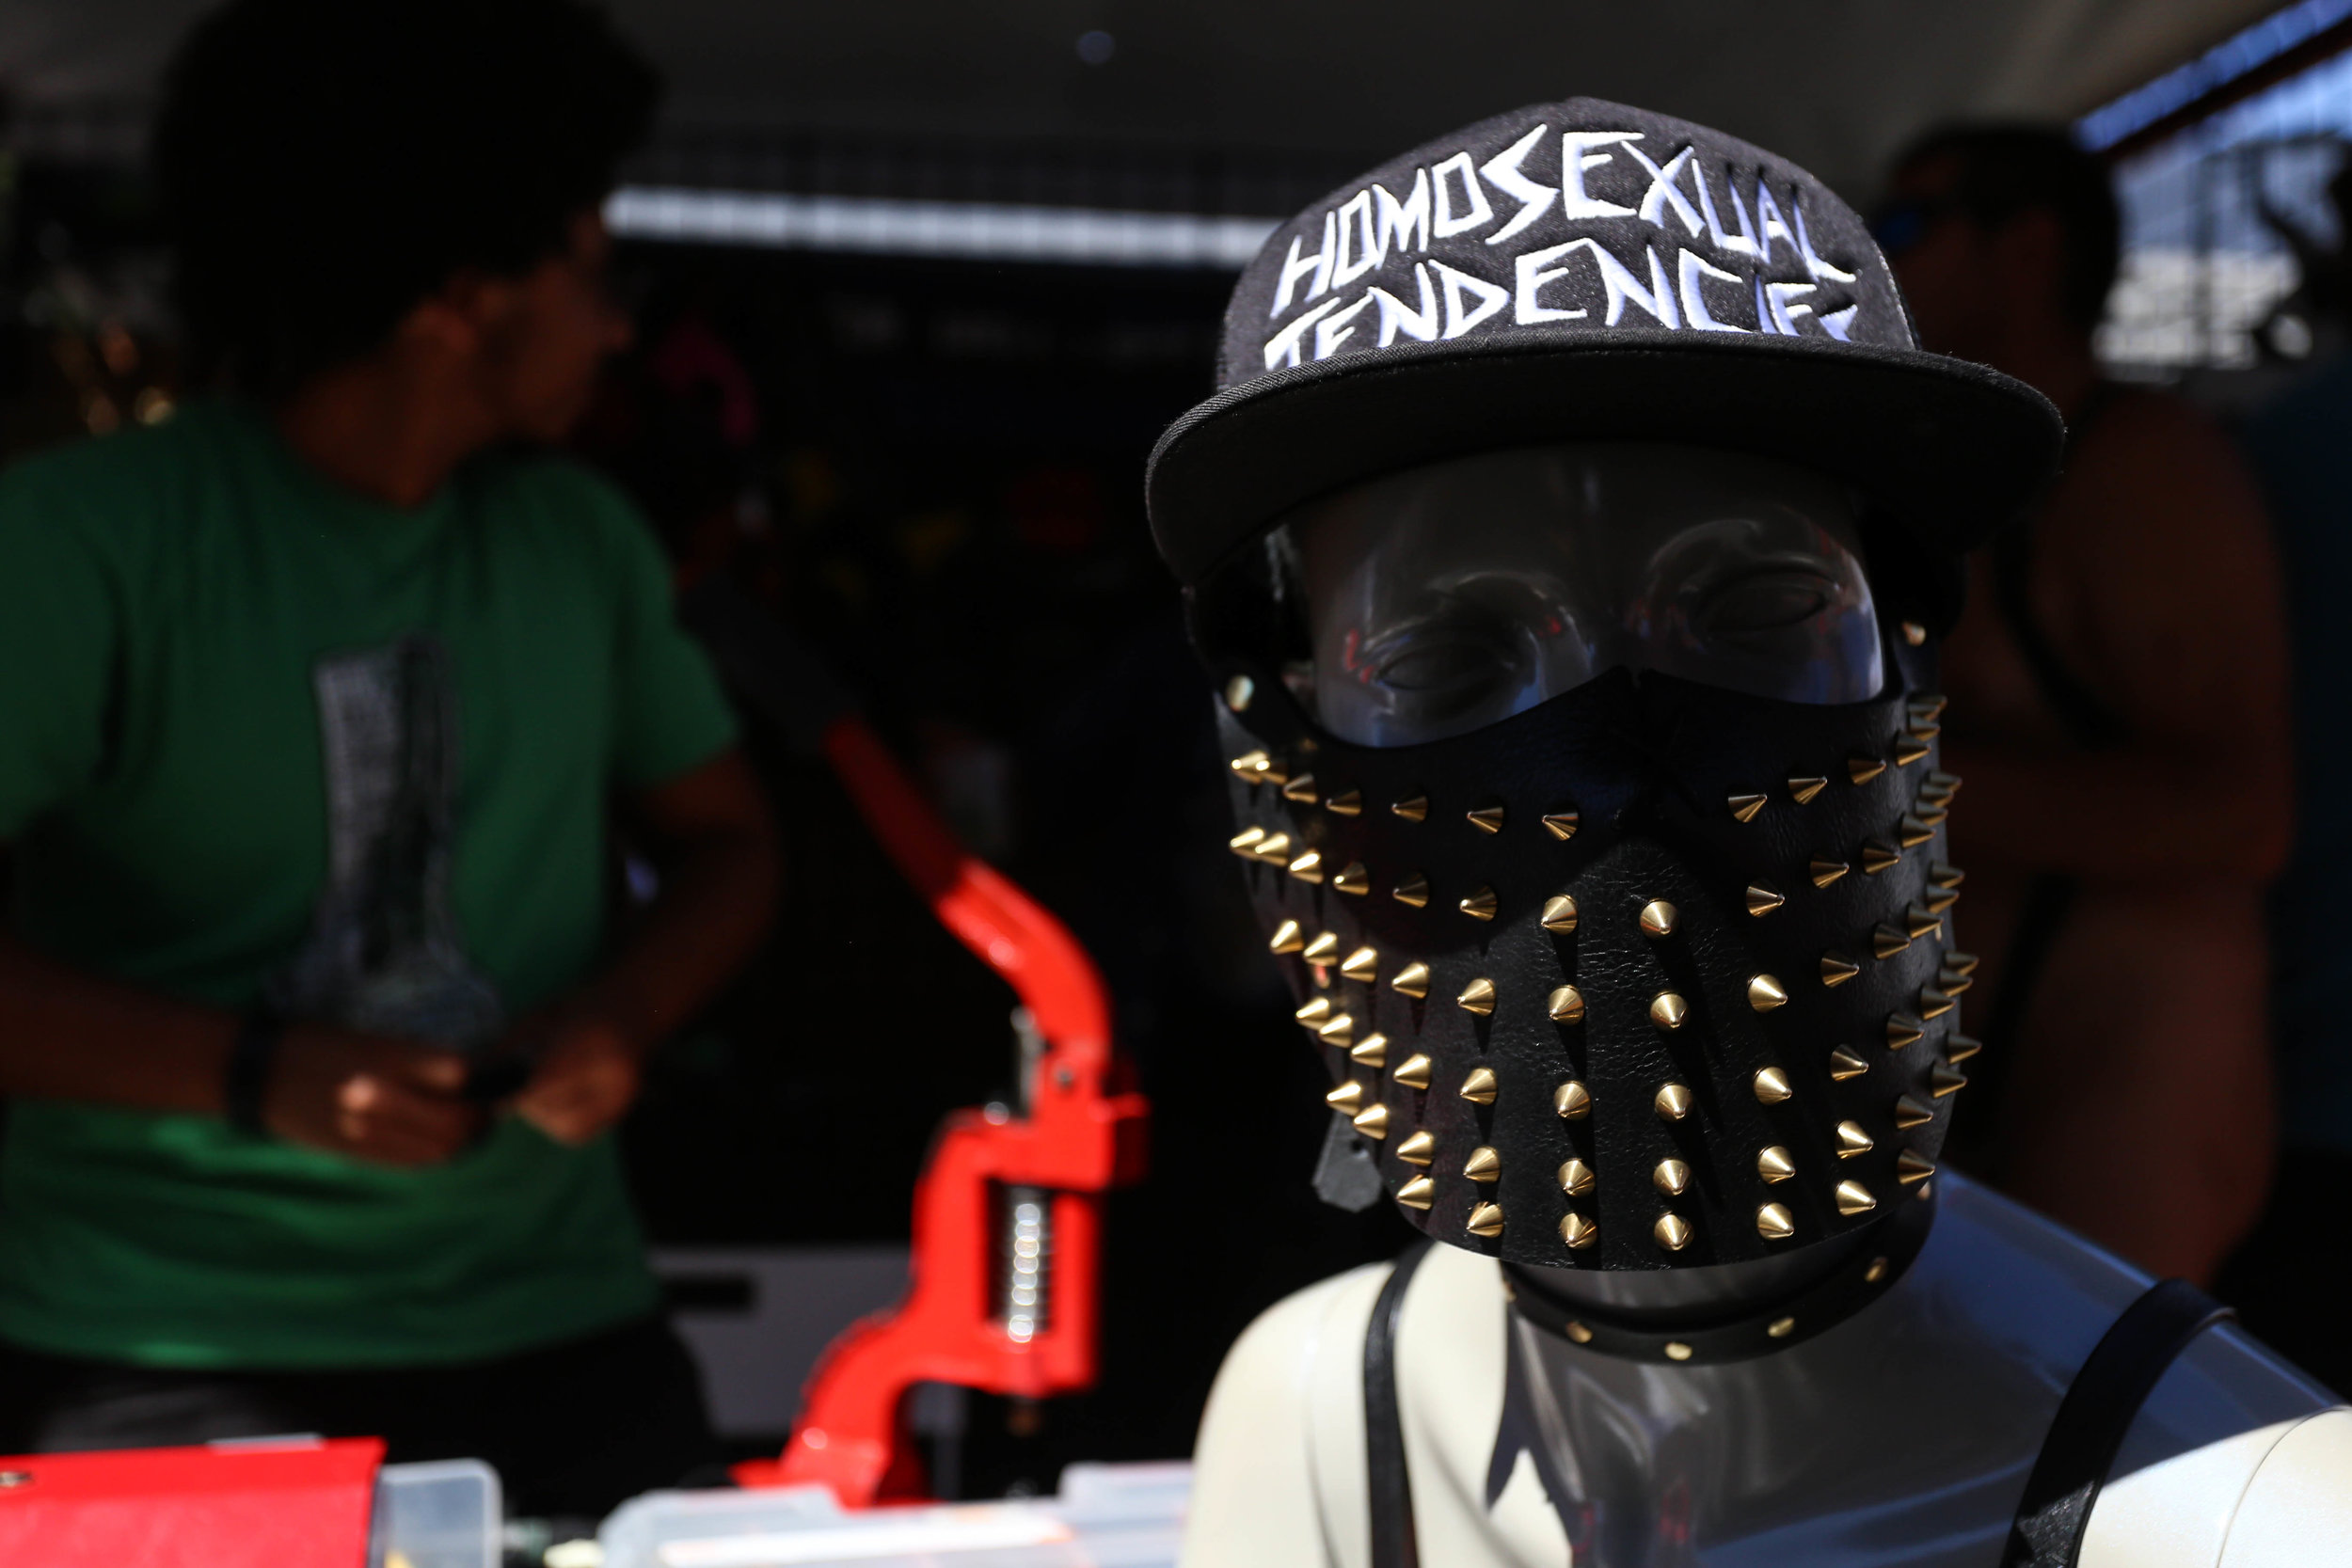 Muzzles and other items were being sold at the Folsom Street Fair where hundreds gathered for the festivities, San Francisco, California, Sunday, Sept. 25, 2016. (Jessica Webb)